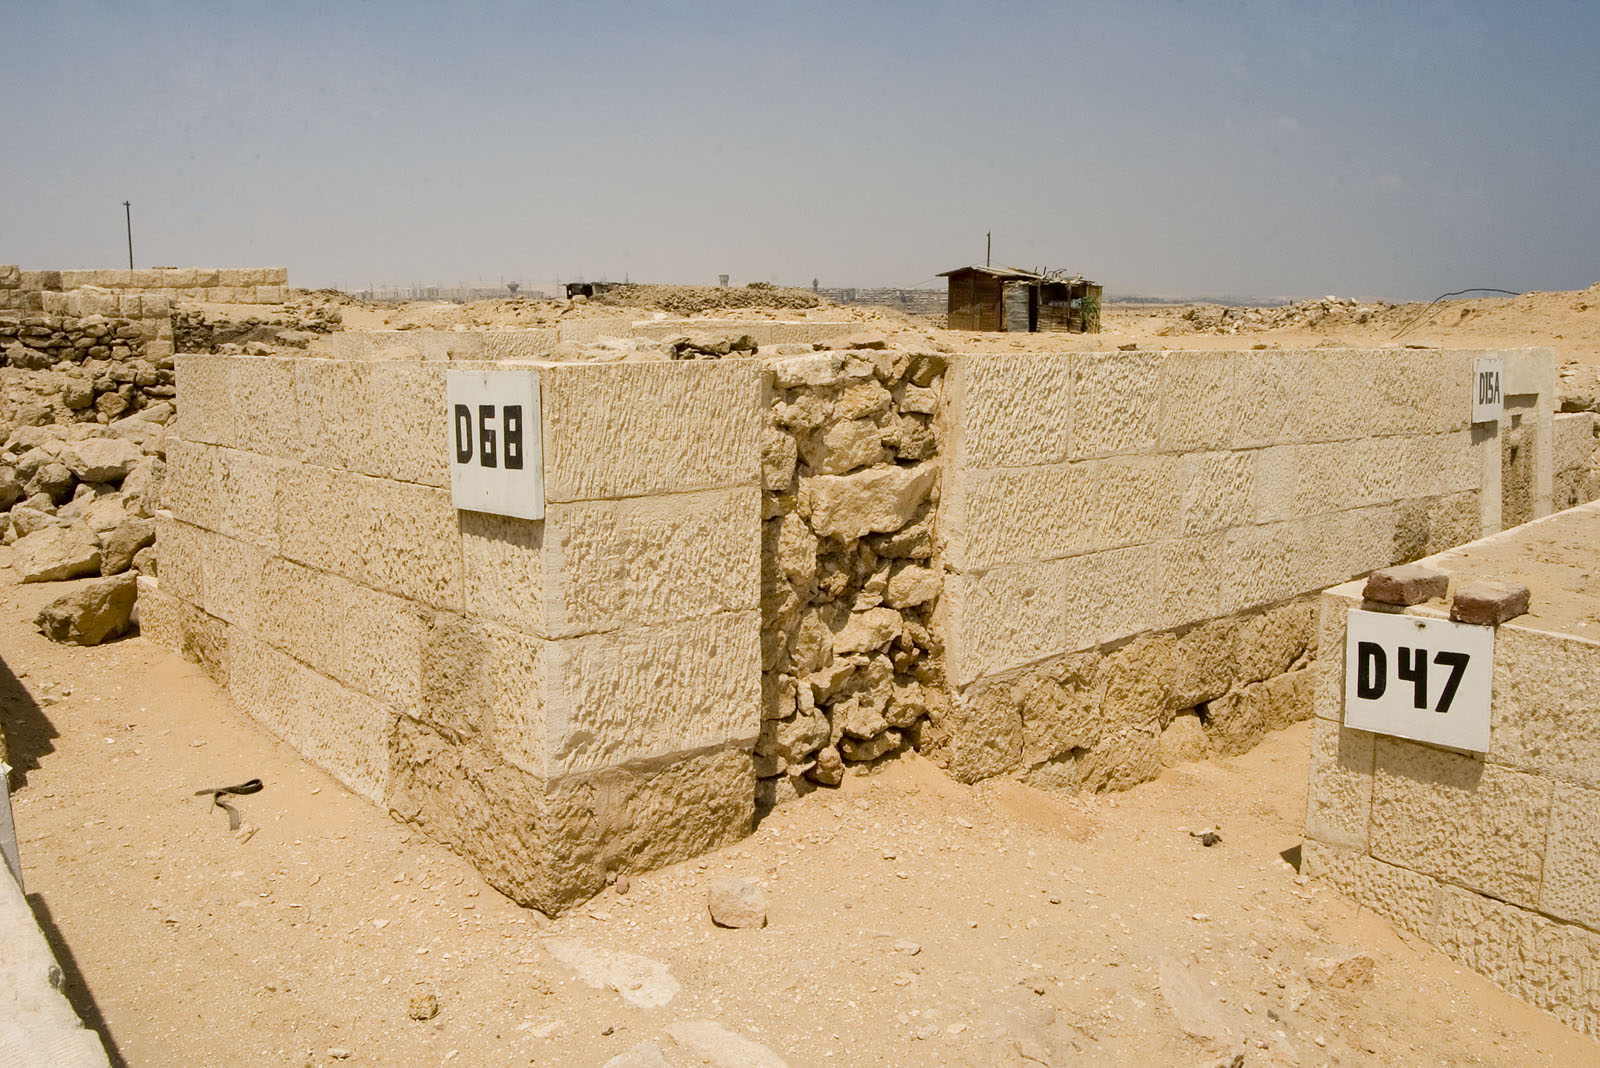 Western Cemetery: Site: Giza; View: D 68, D 47, D 15A